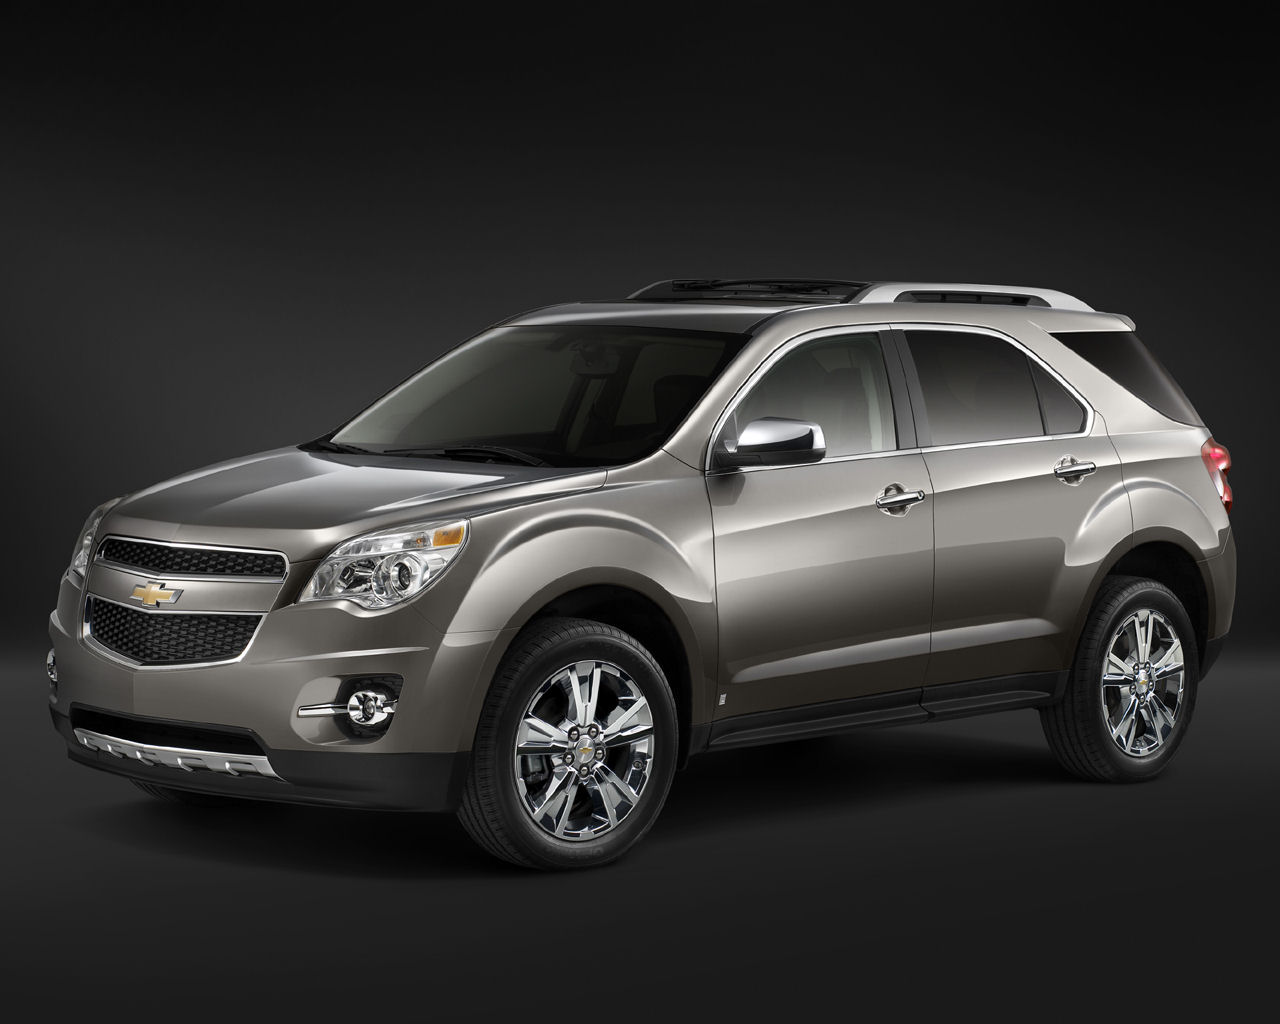 2012 Chevrolet Equinox Front (View 2 of 6)